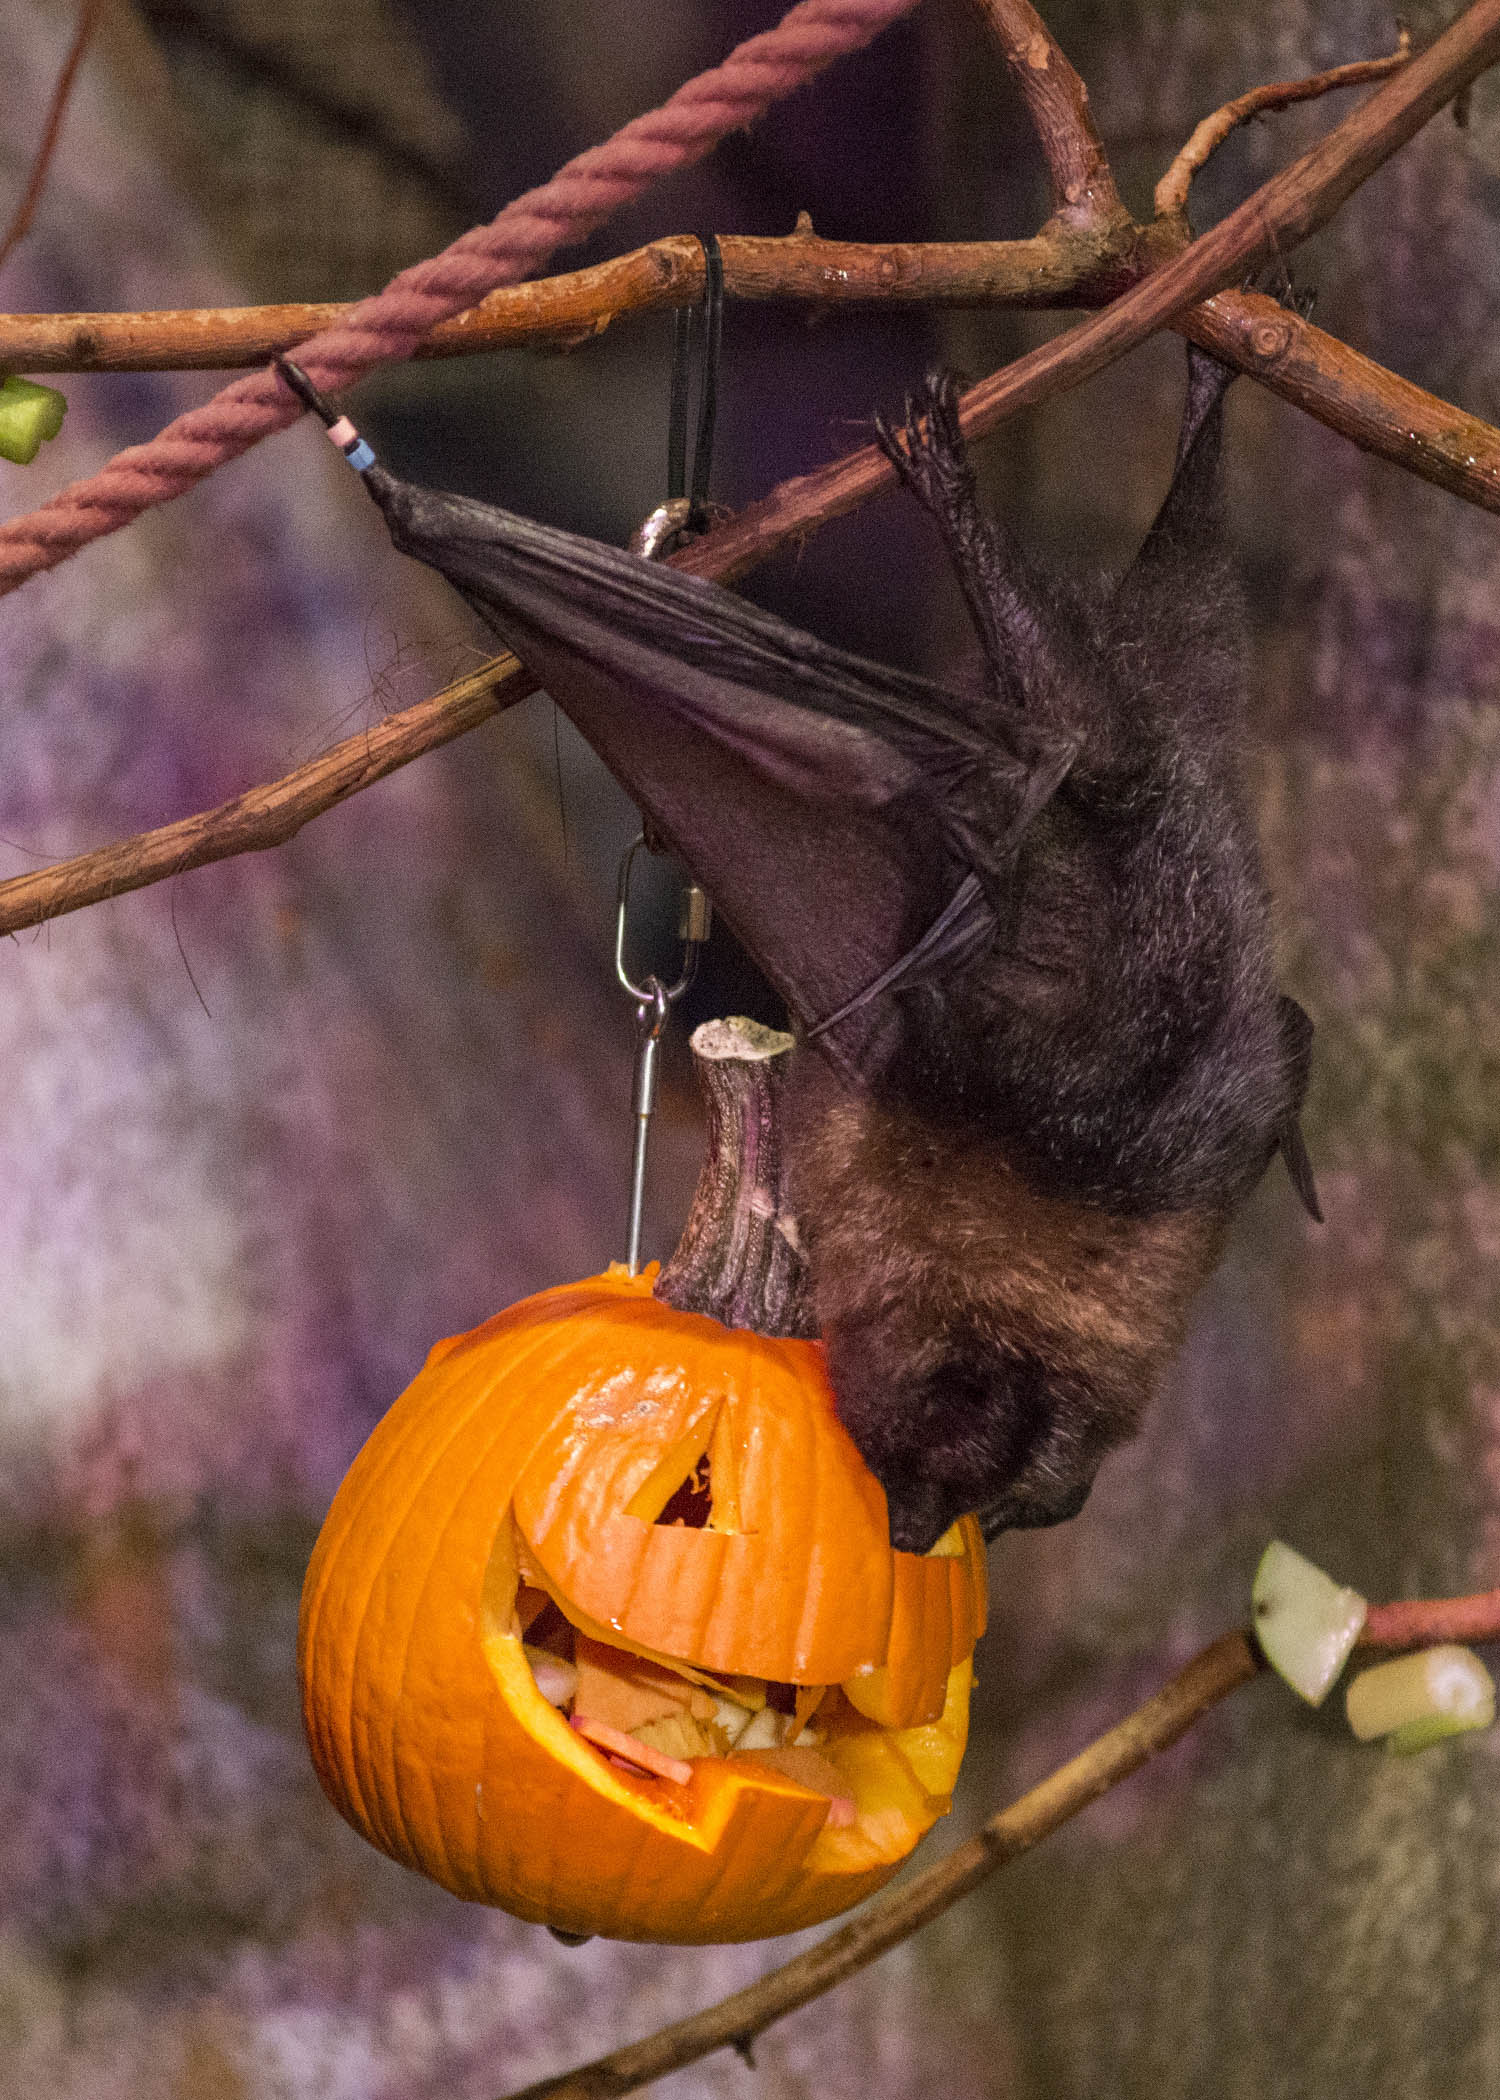 "<div class=""meta image-caption""><div class=""origin-logo origin-image wls""><span>WLS</span></div><span class=""caption-text"">The Rodrigues fruit bats at Brookfield Zoo's Australia House received carved pumpkins filled with a variety of chopped fruit. (Kelly Tone/Chicago Zoological Society)</span></div>"